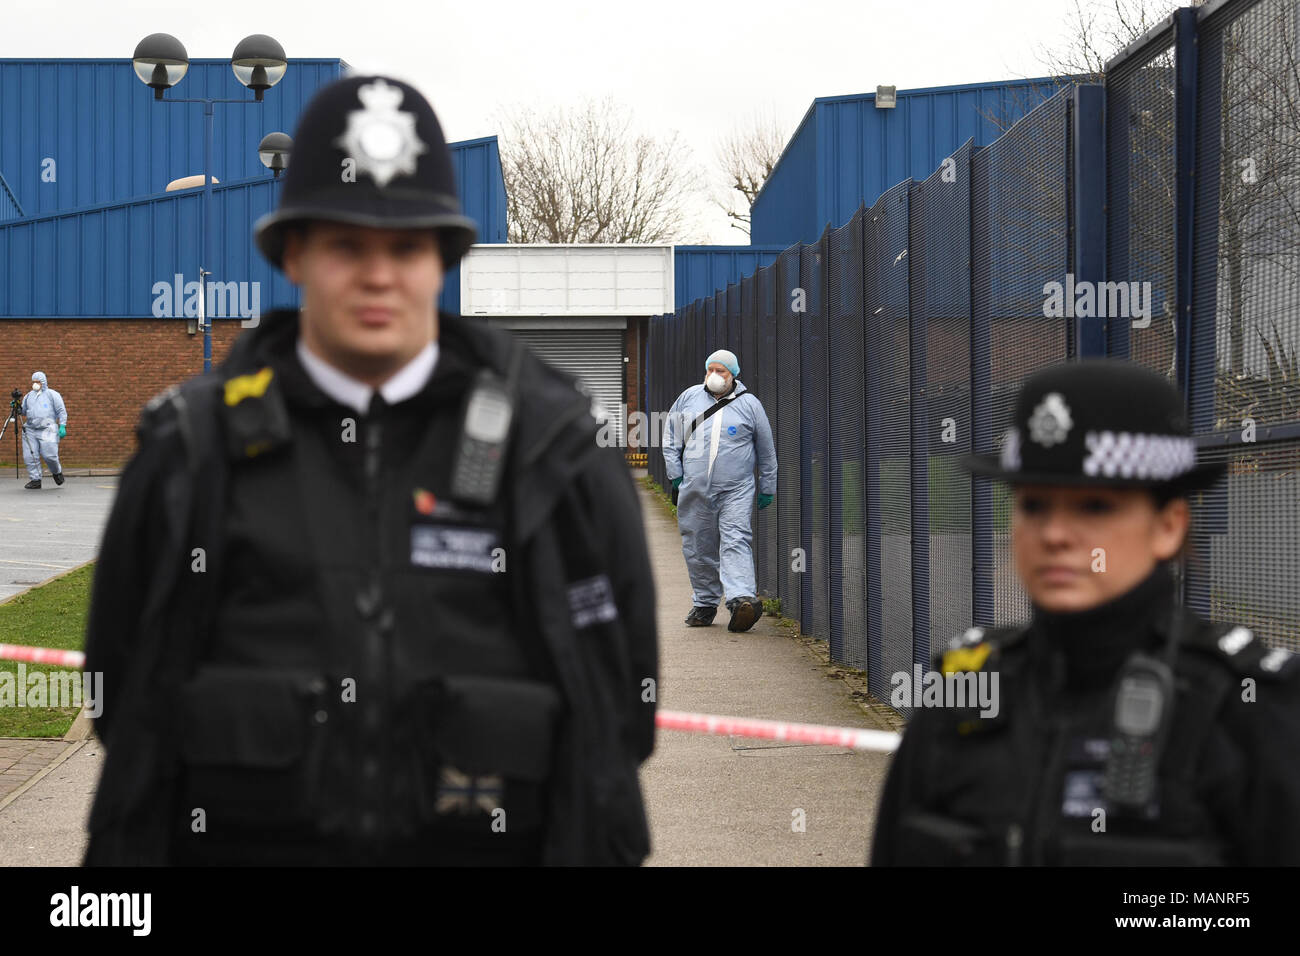 Police And Forensic Officers Attend The Scene Where A 16 Year Old Boy Was Shot On Monday Evening And Left In A Critical Condition In Markhouse Road In Walthamstow East London Stock Photo